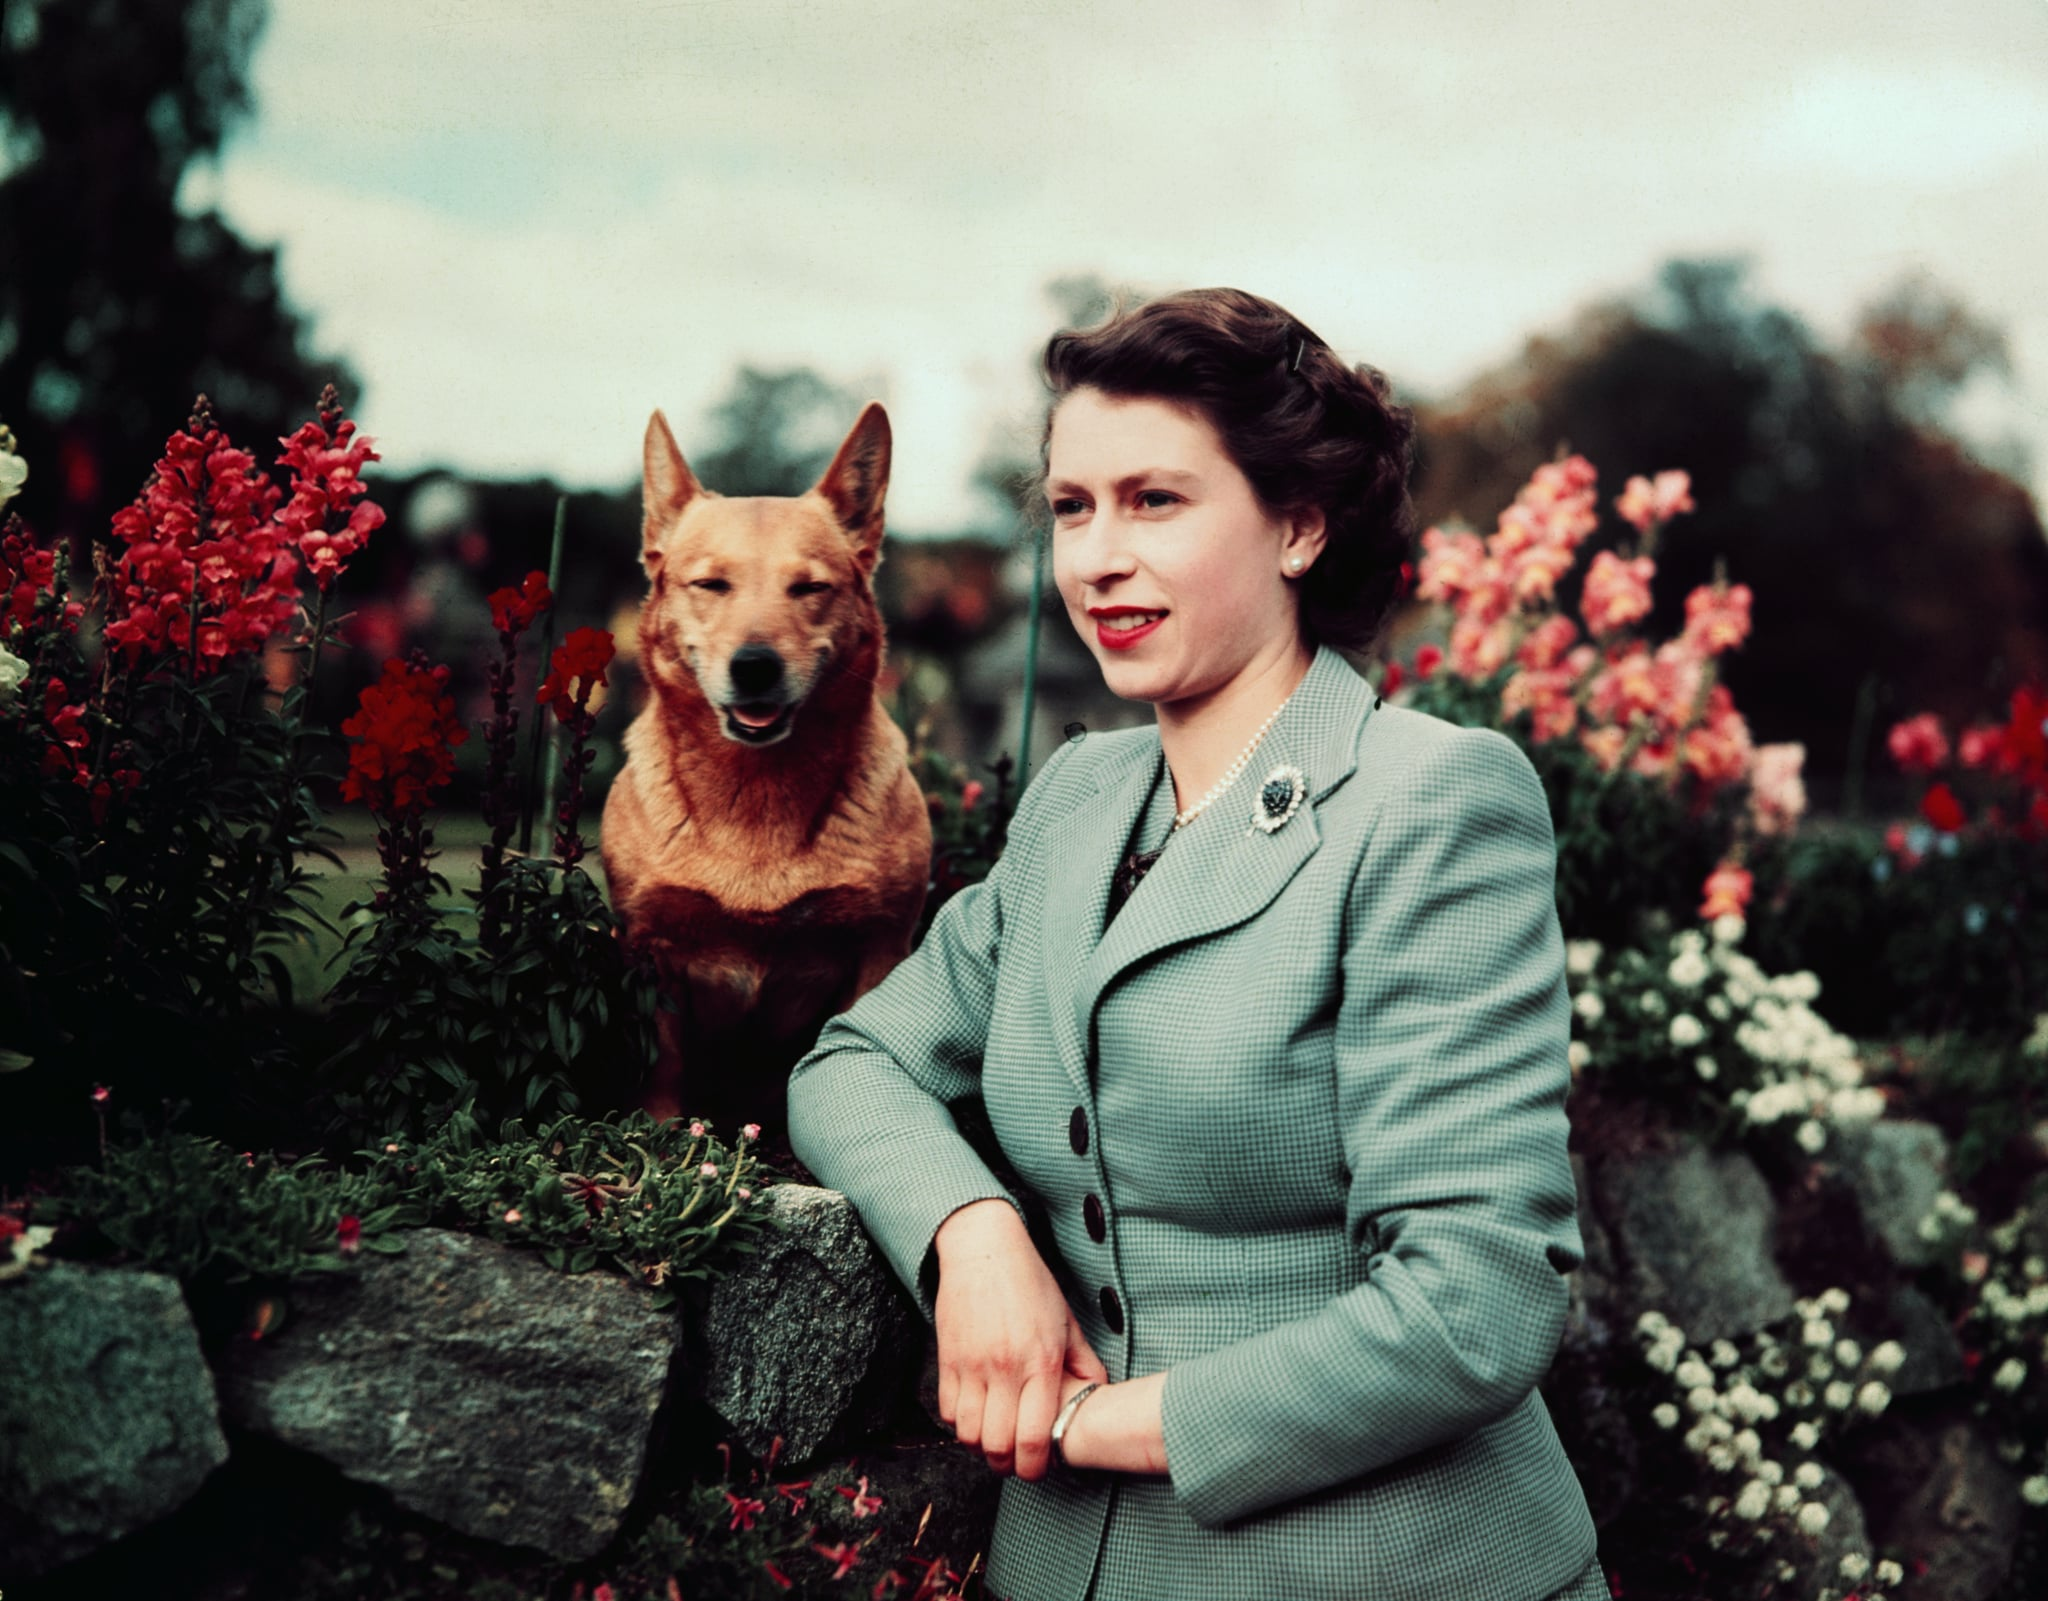 March,1953- Queen Elizabeth II of England--closeup in garden with dog. UPI colour slide.